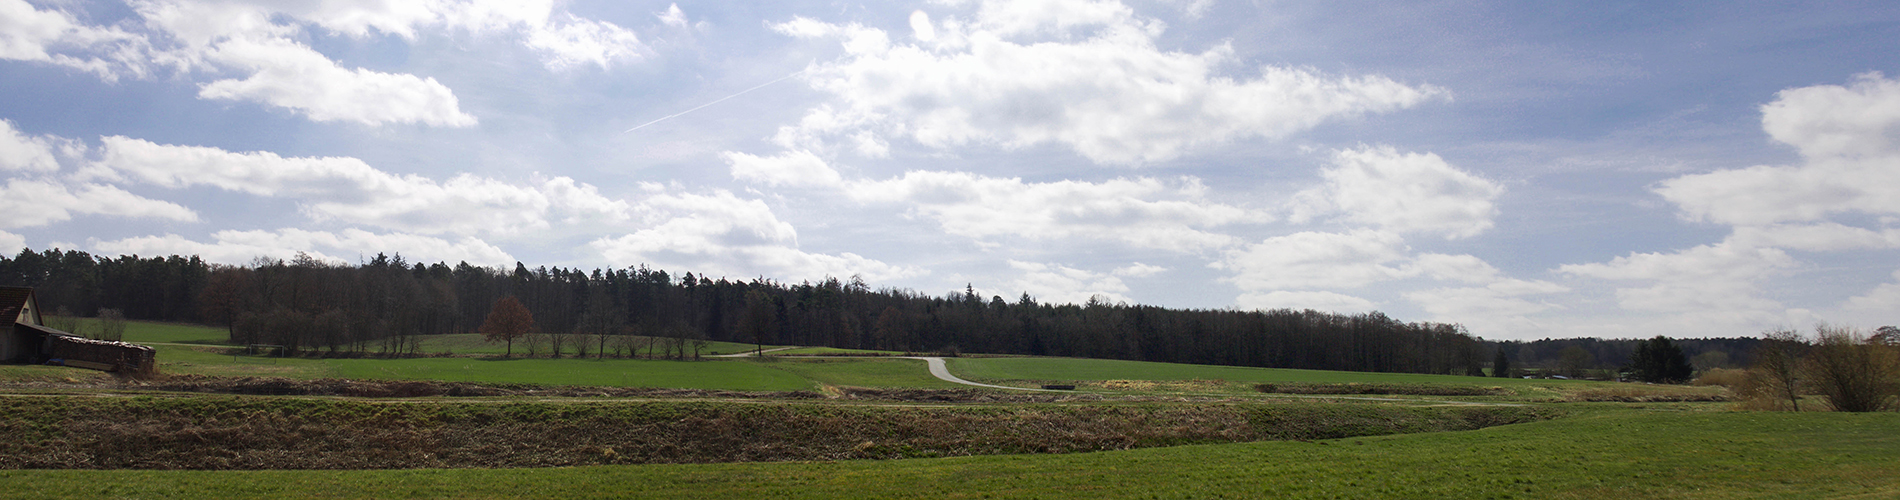 Headerbild Landschaft